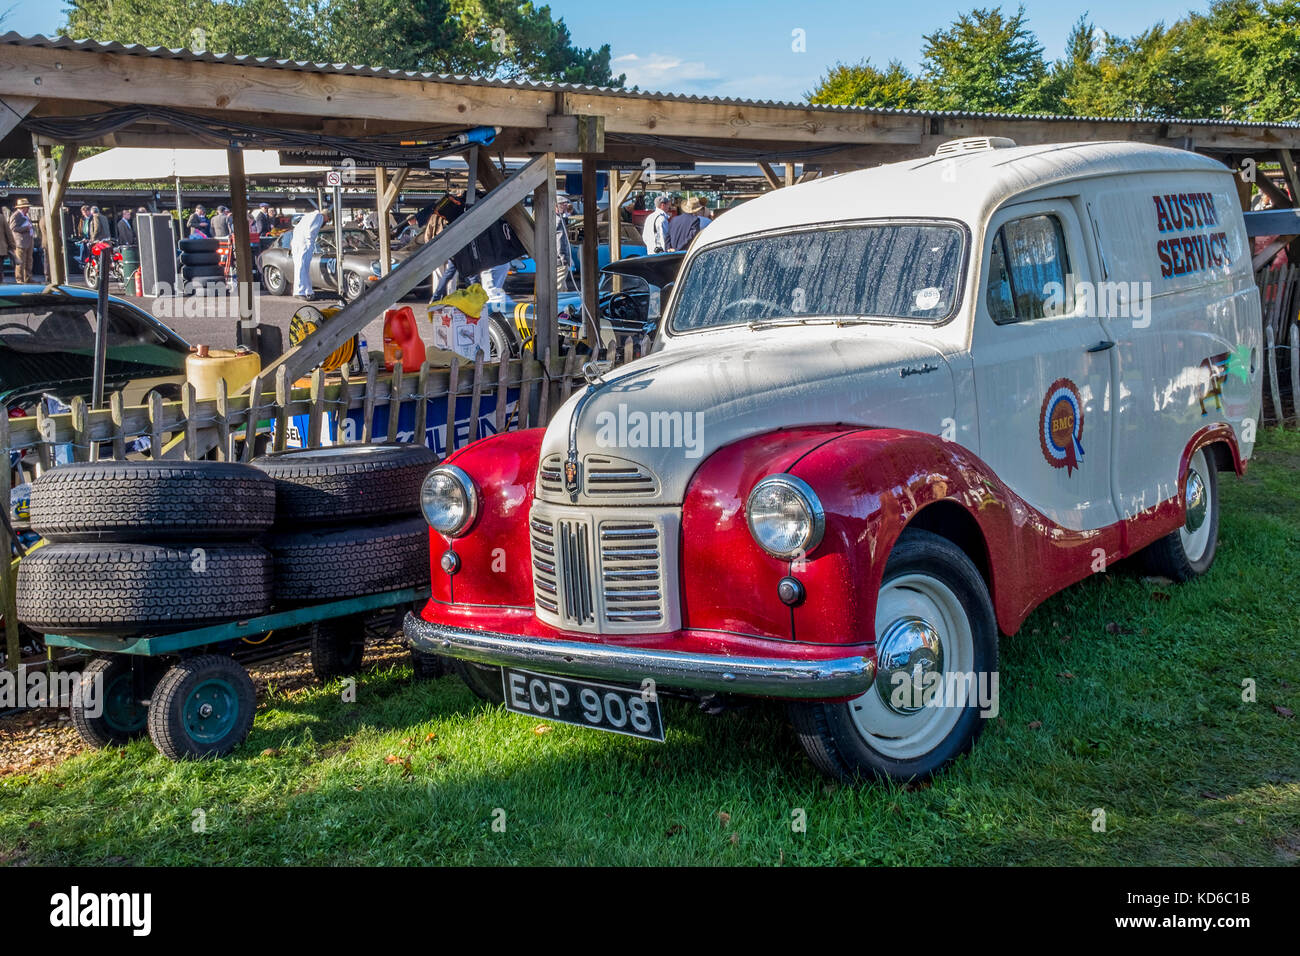 1954 Austin A40 Van, Ecp 908, Am Goodwood Revival 2017, Sussex, UK. Stockbild